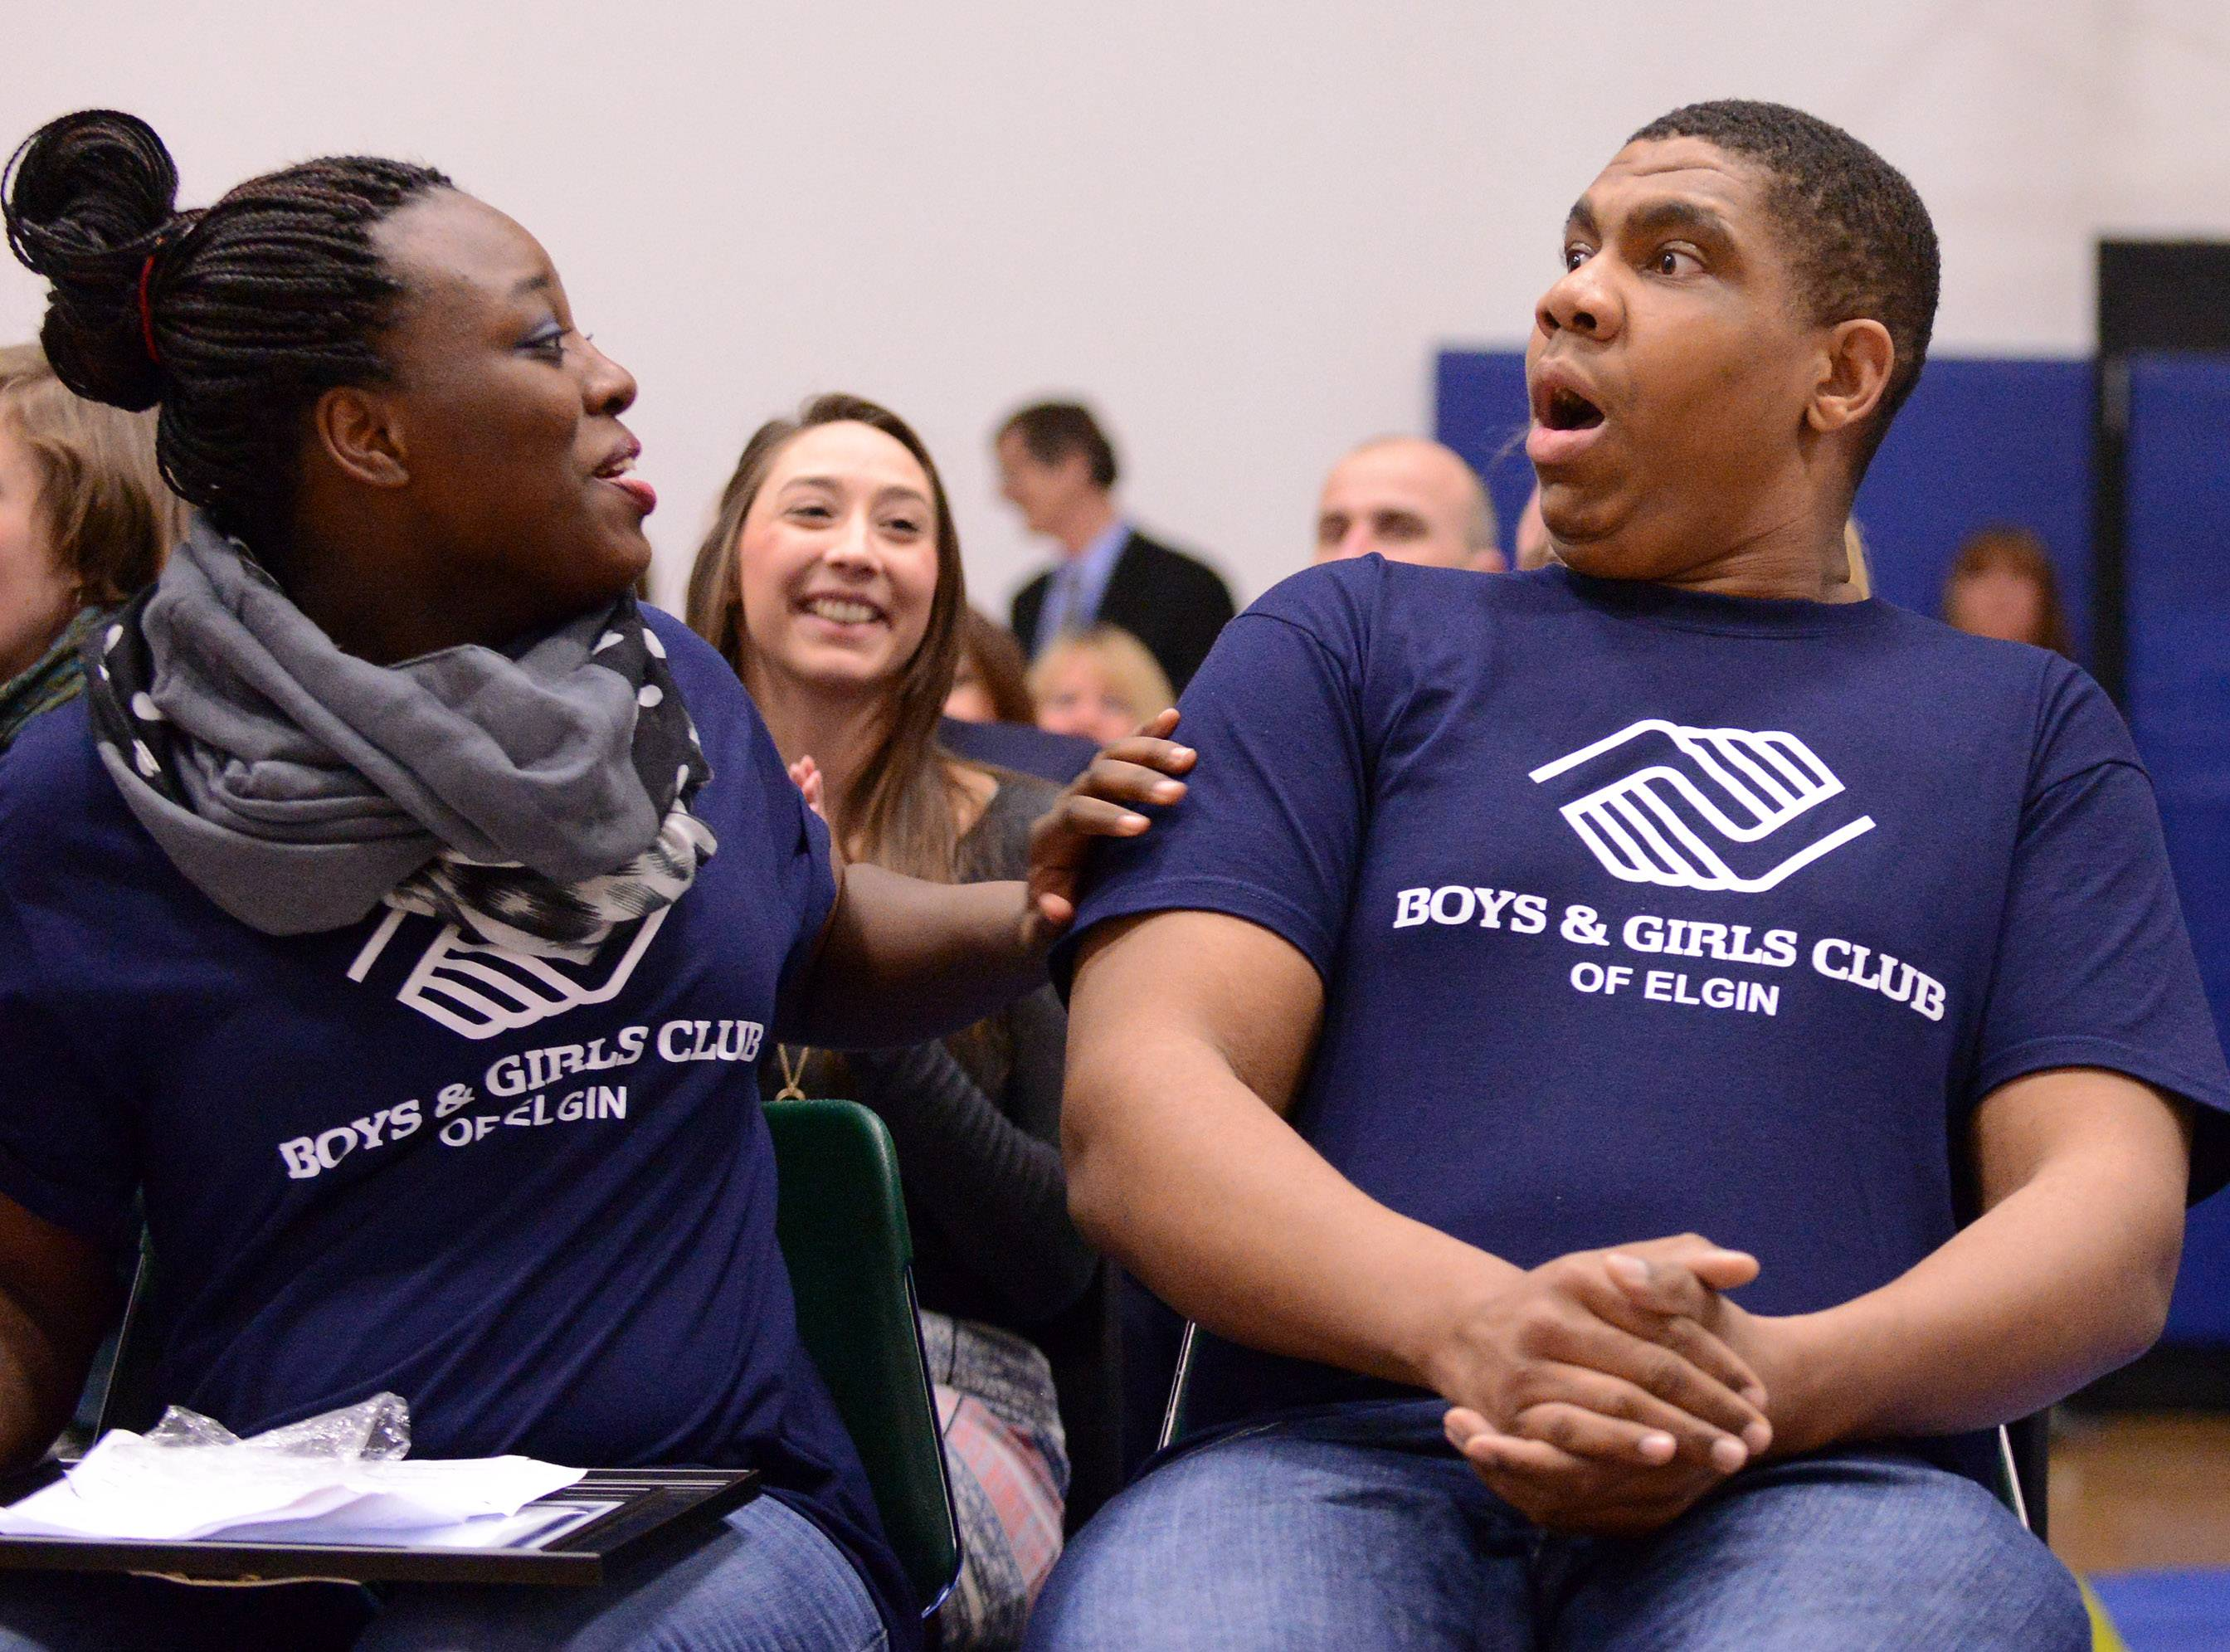 Chris Holling, a Larkin High School junior, reacts with surprise after being selected by the Boys & Girls Club of Elgin as a candidate to represent the club in the state competition for Youth of the Year.